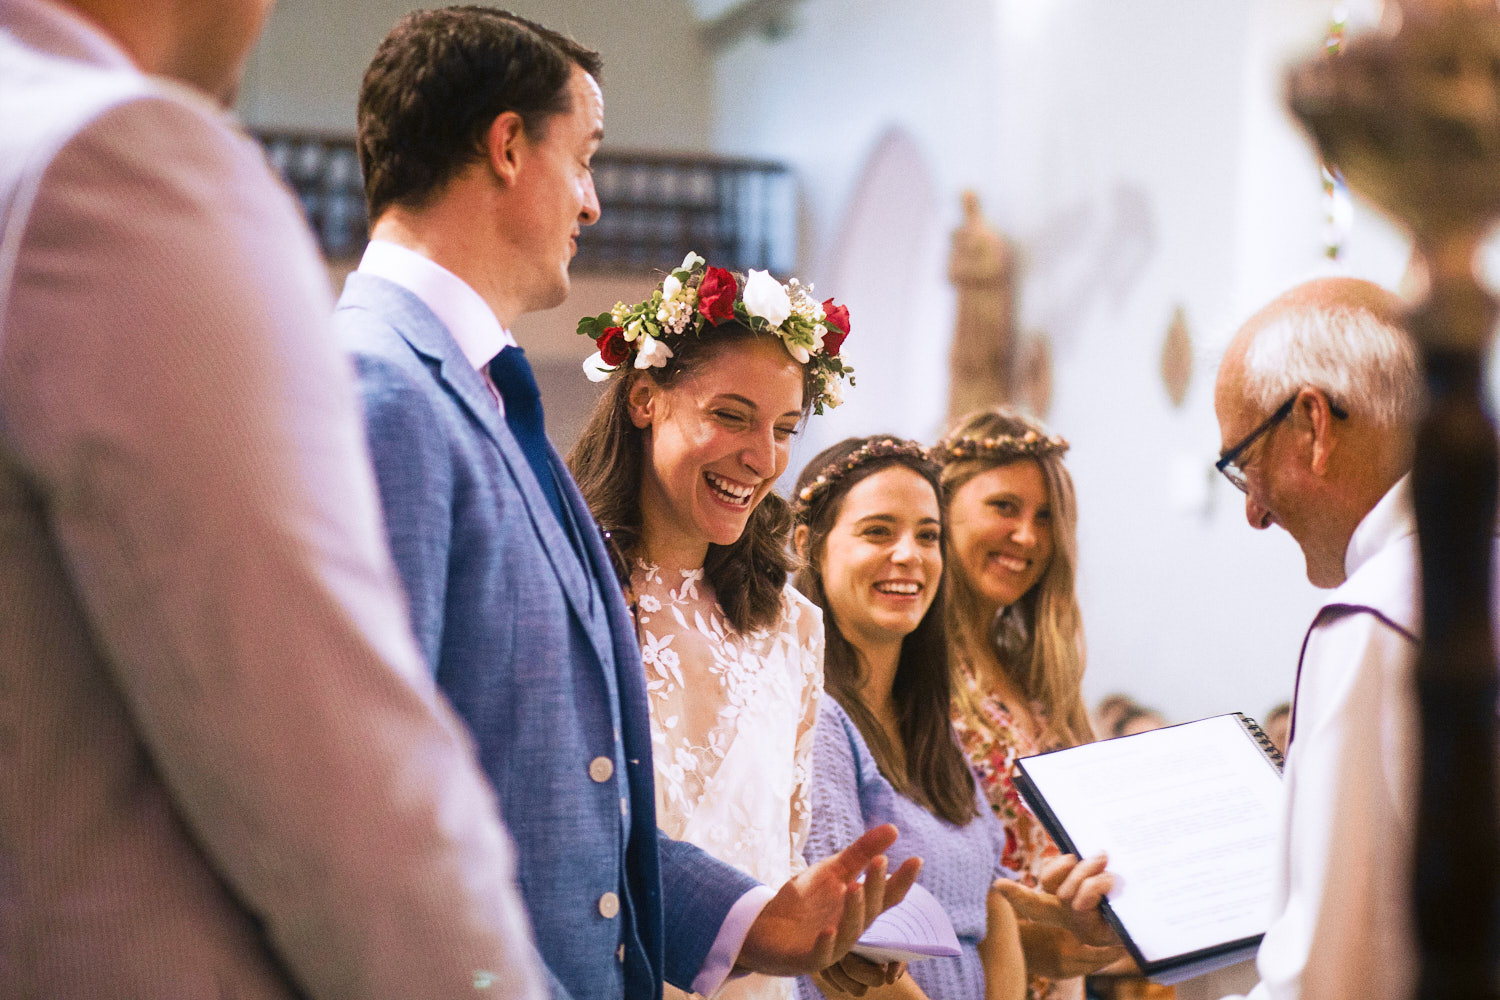 A bride and groom laugh during their vows in France